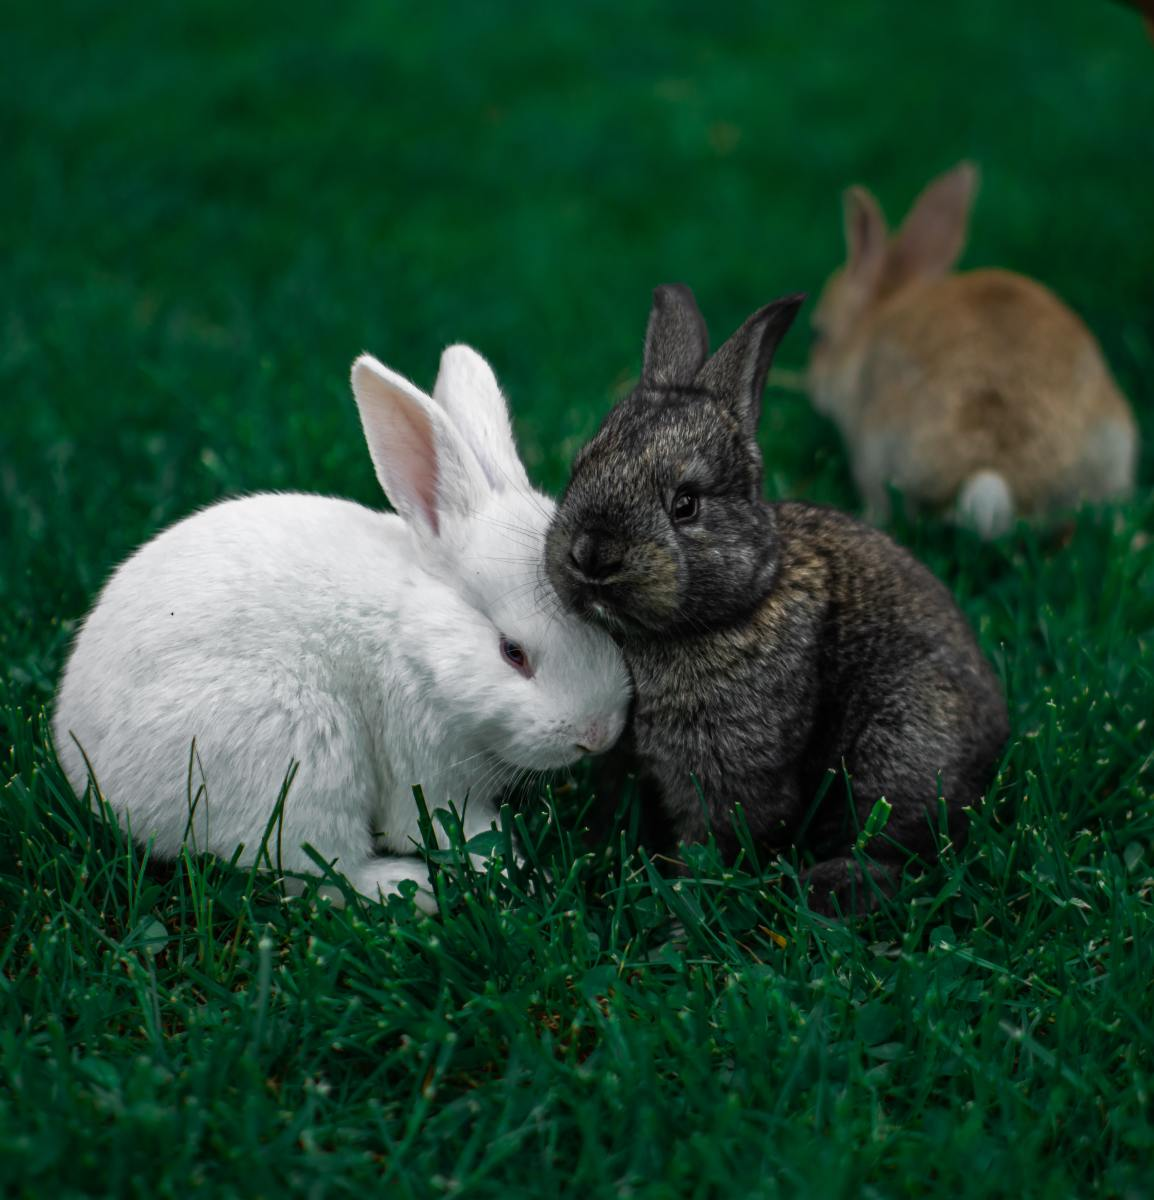 According to some superstition, rabbits can be a sign of much procreation to come.